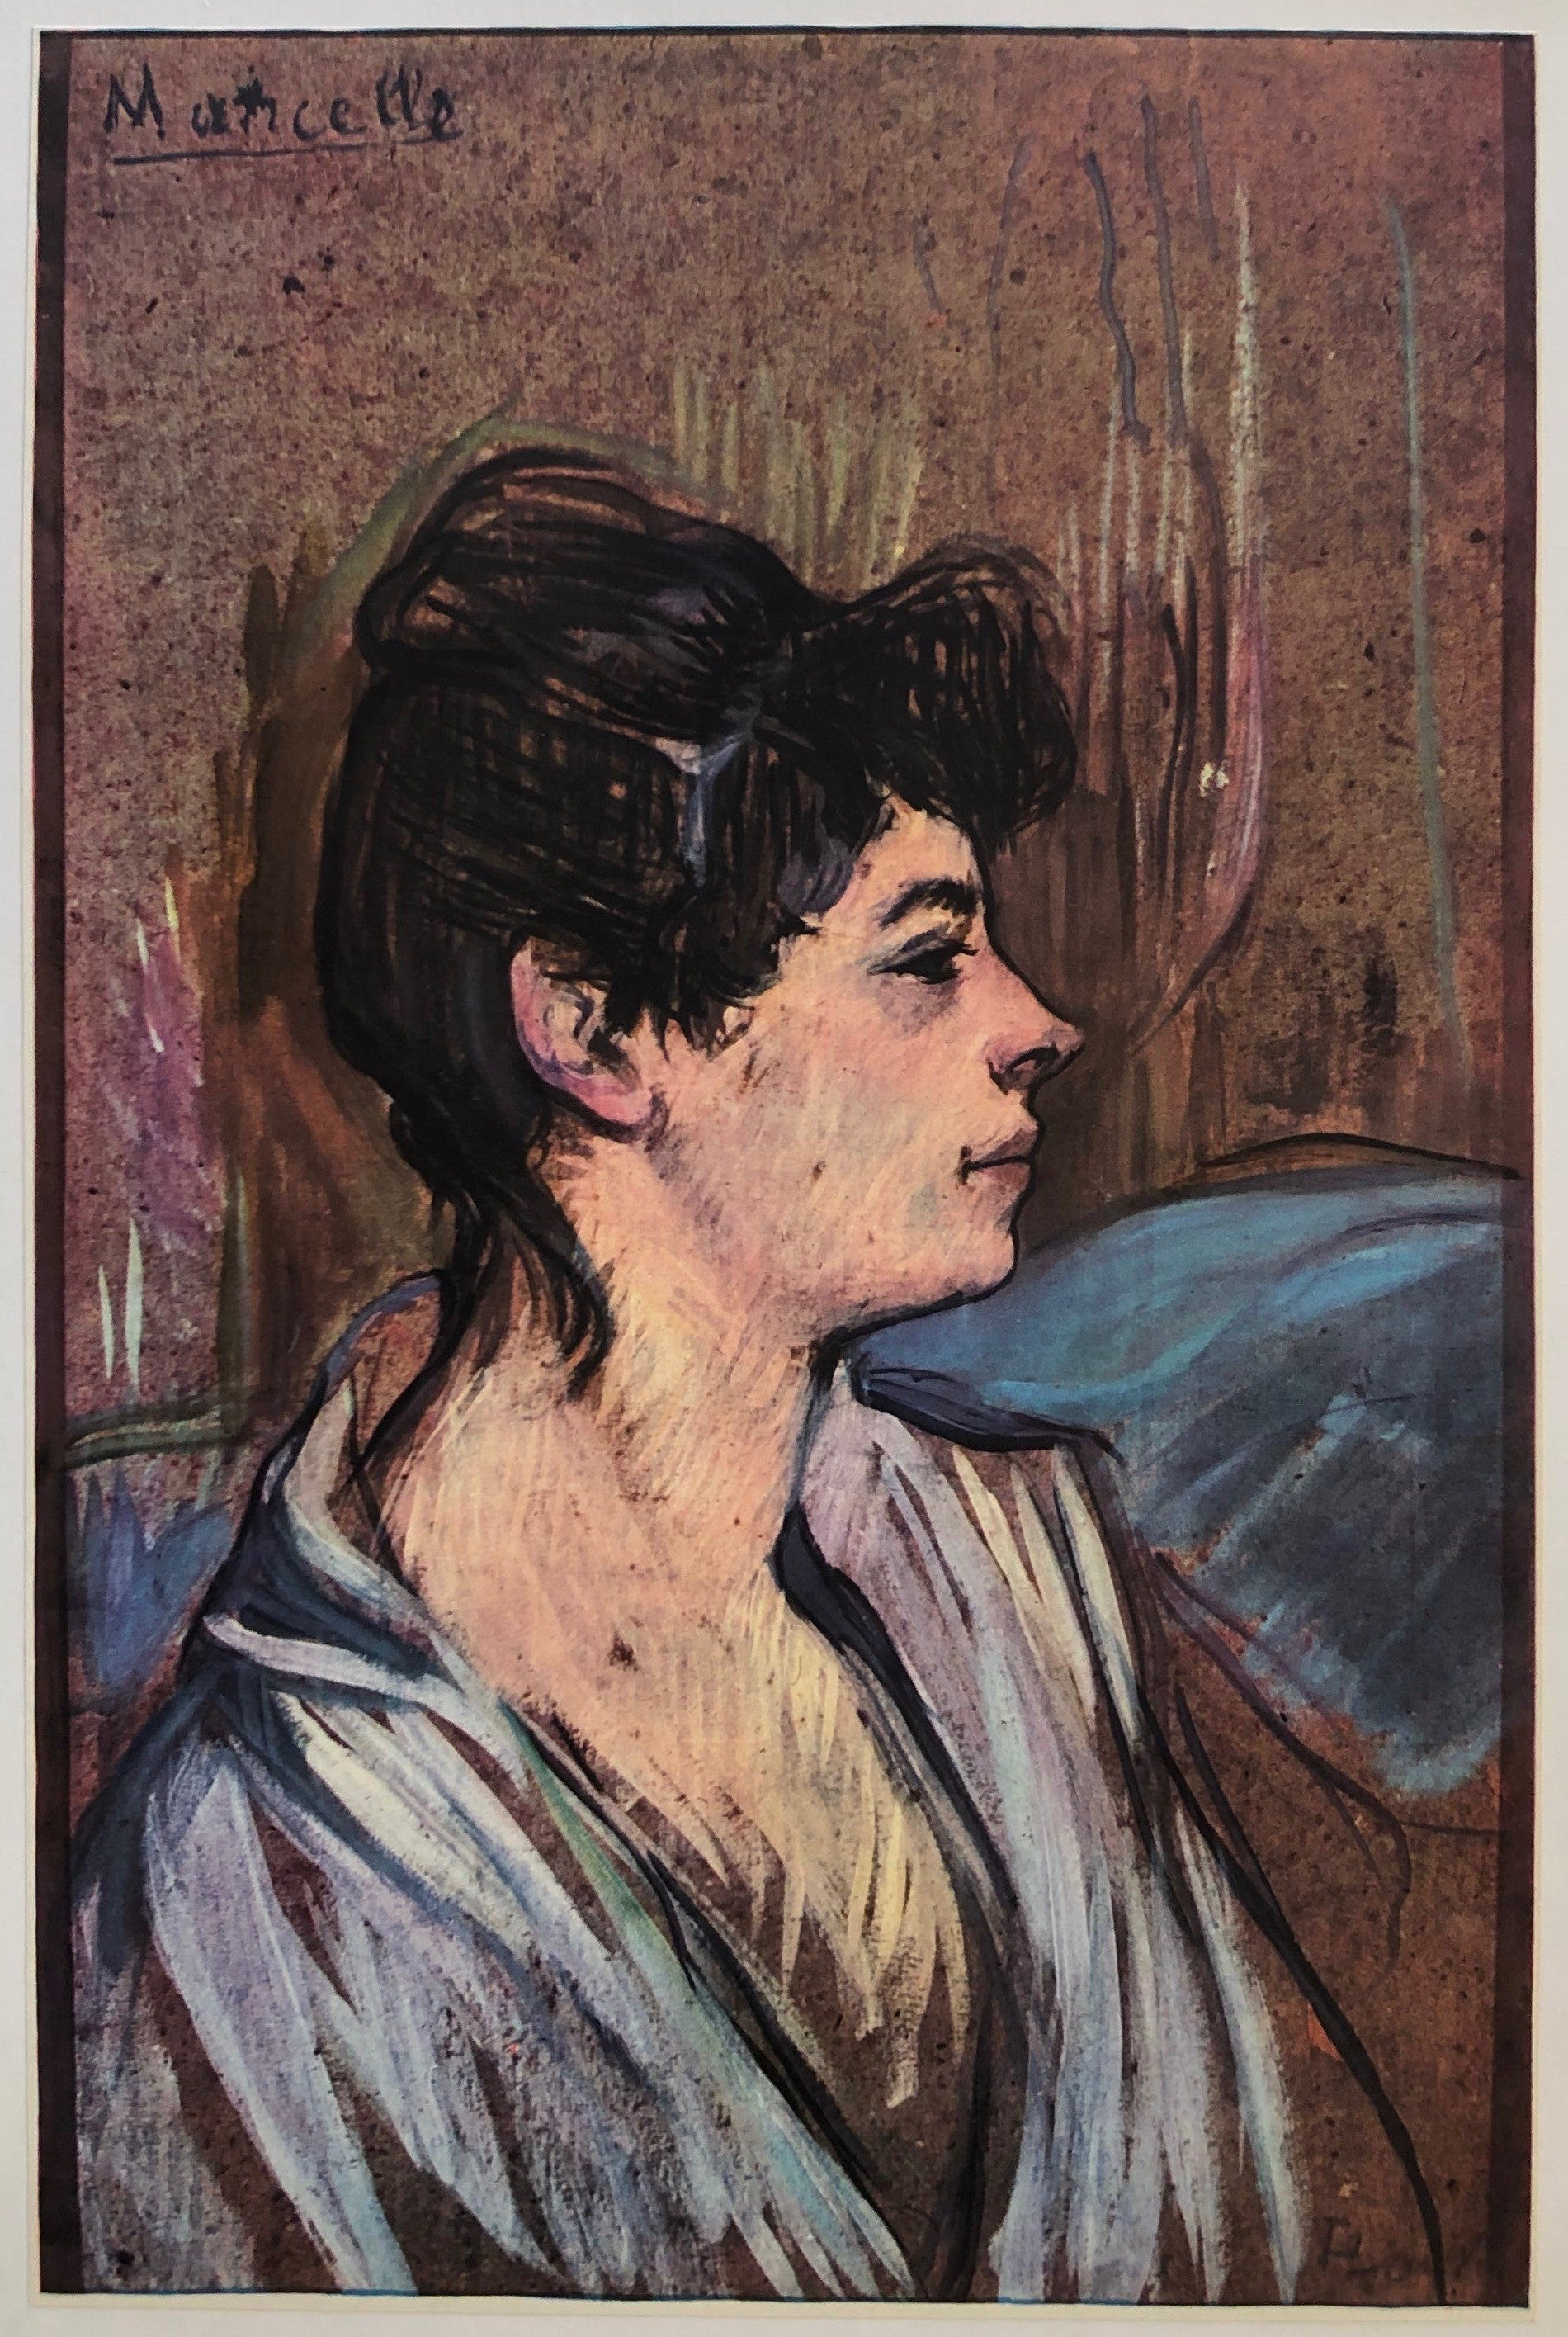 Marcelle by Toulouse-Lautrec